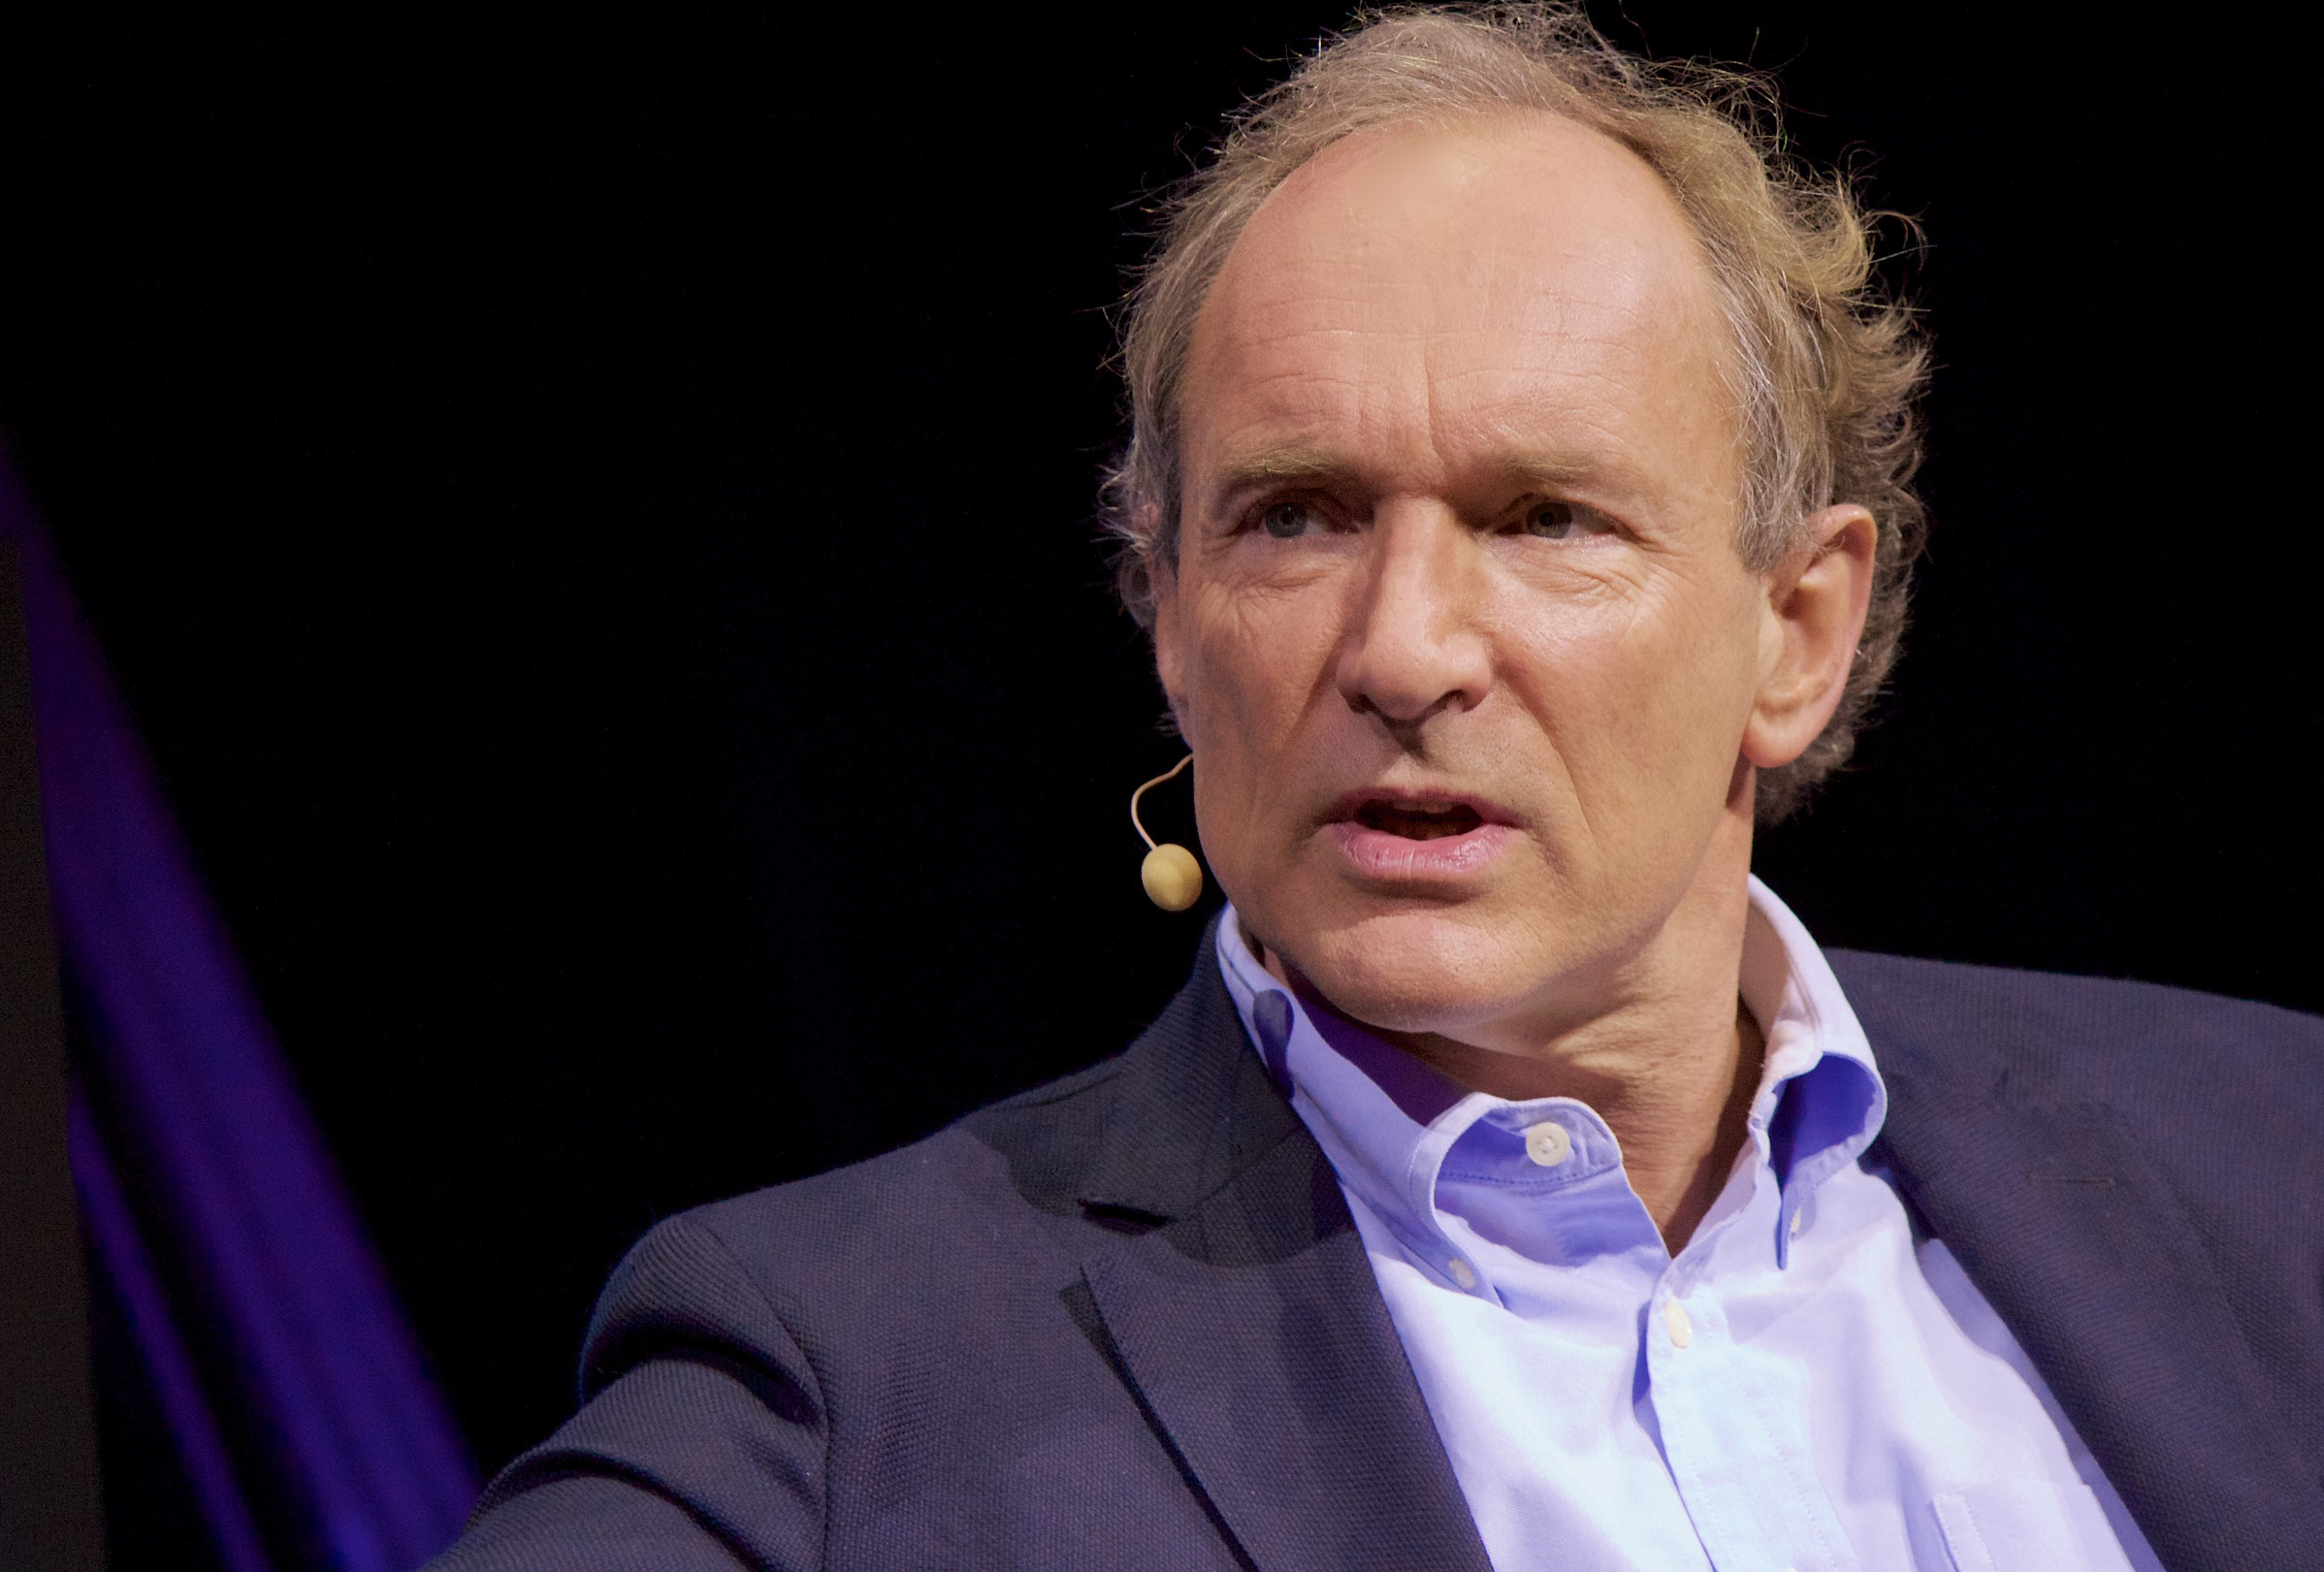 LeWeb: Tim Berners-Lee and the societal impact of the web